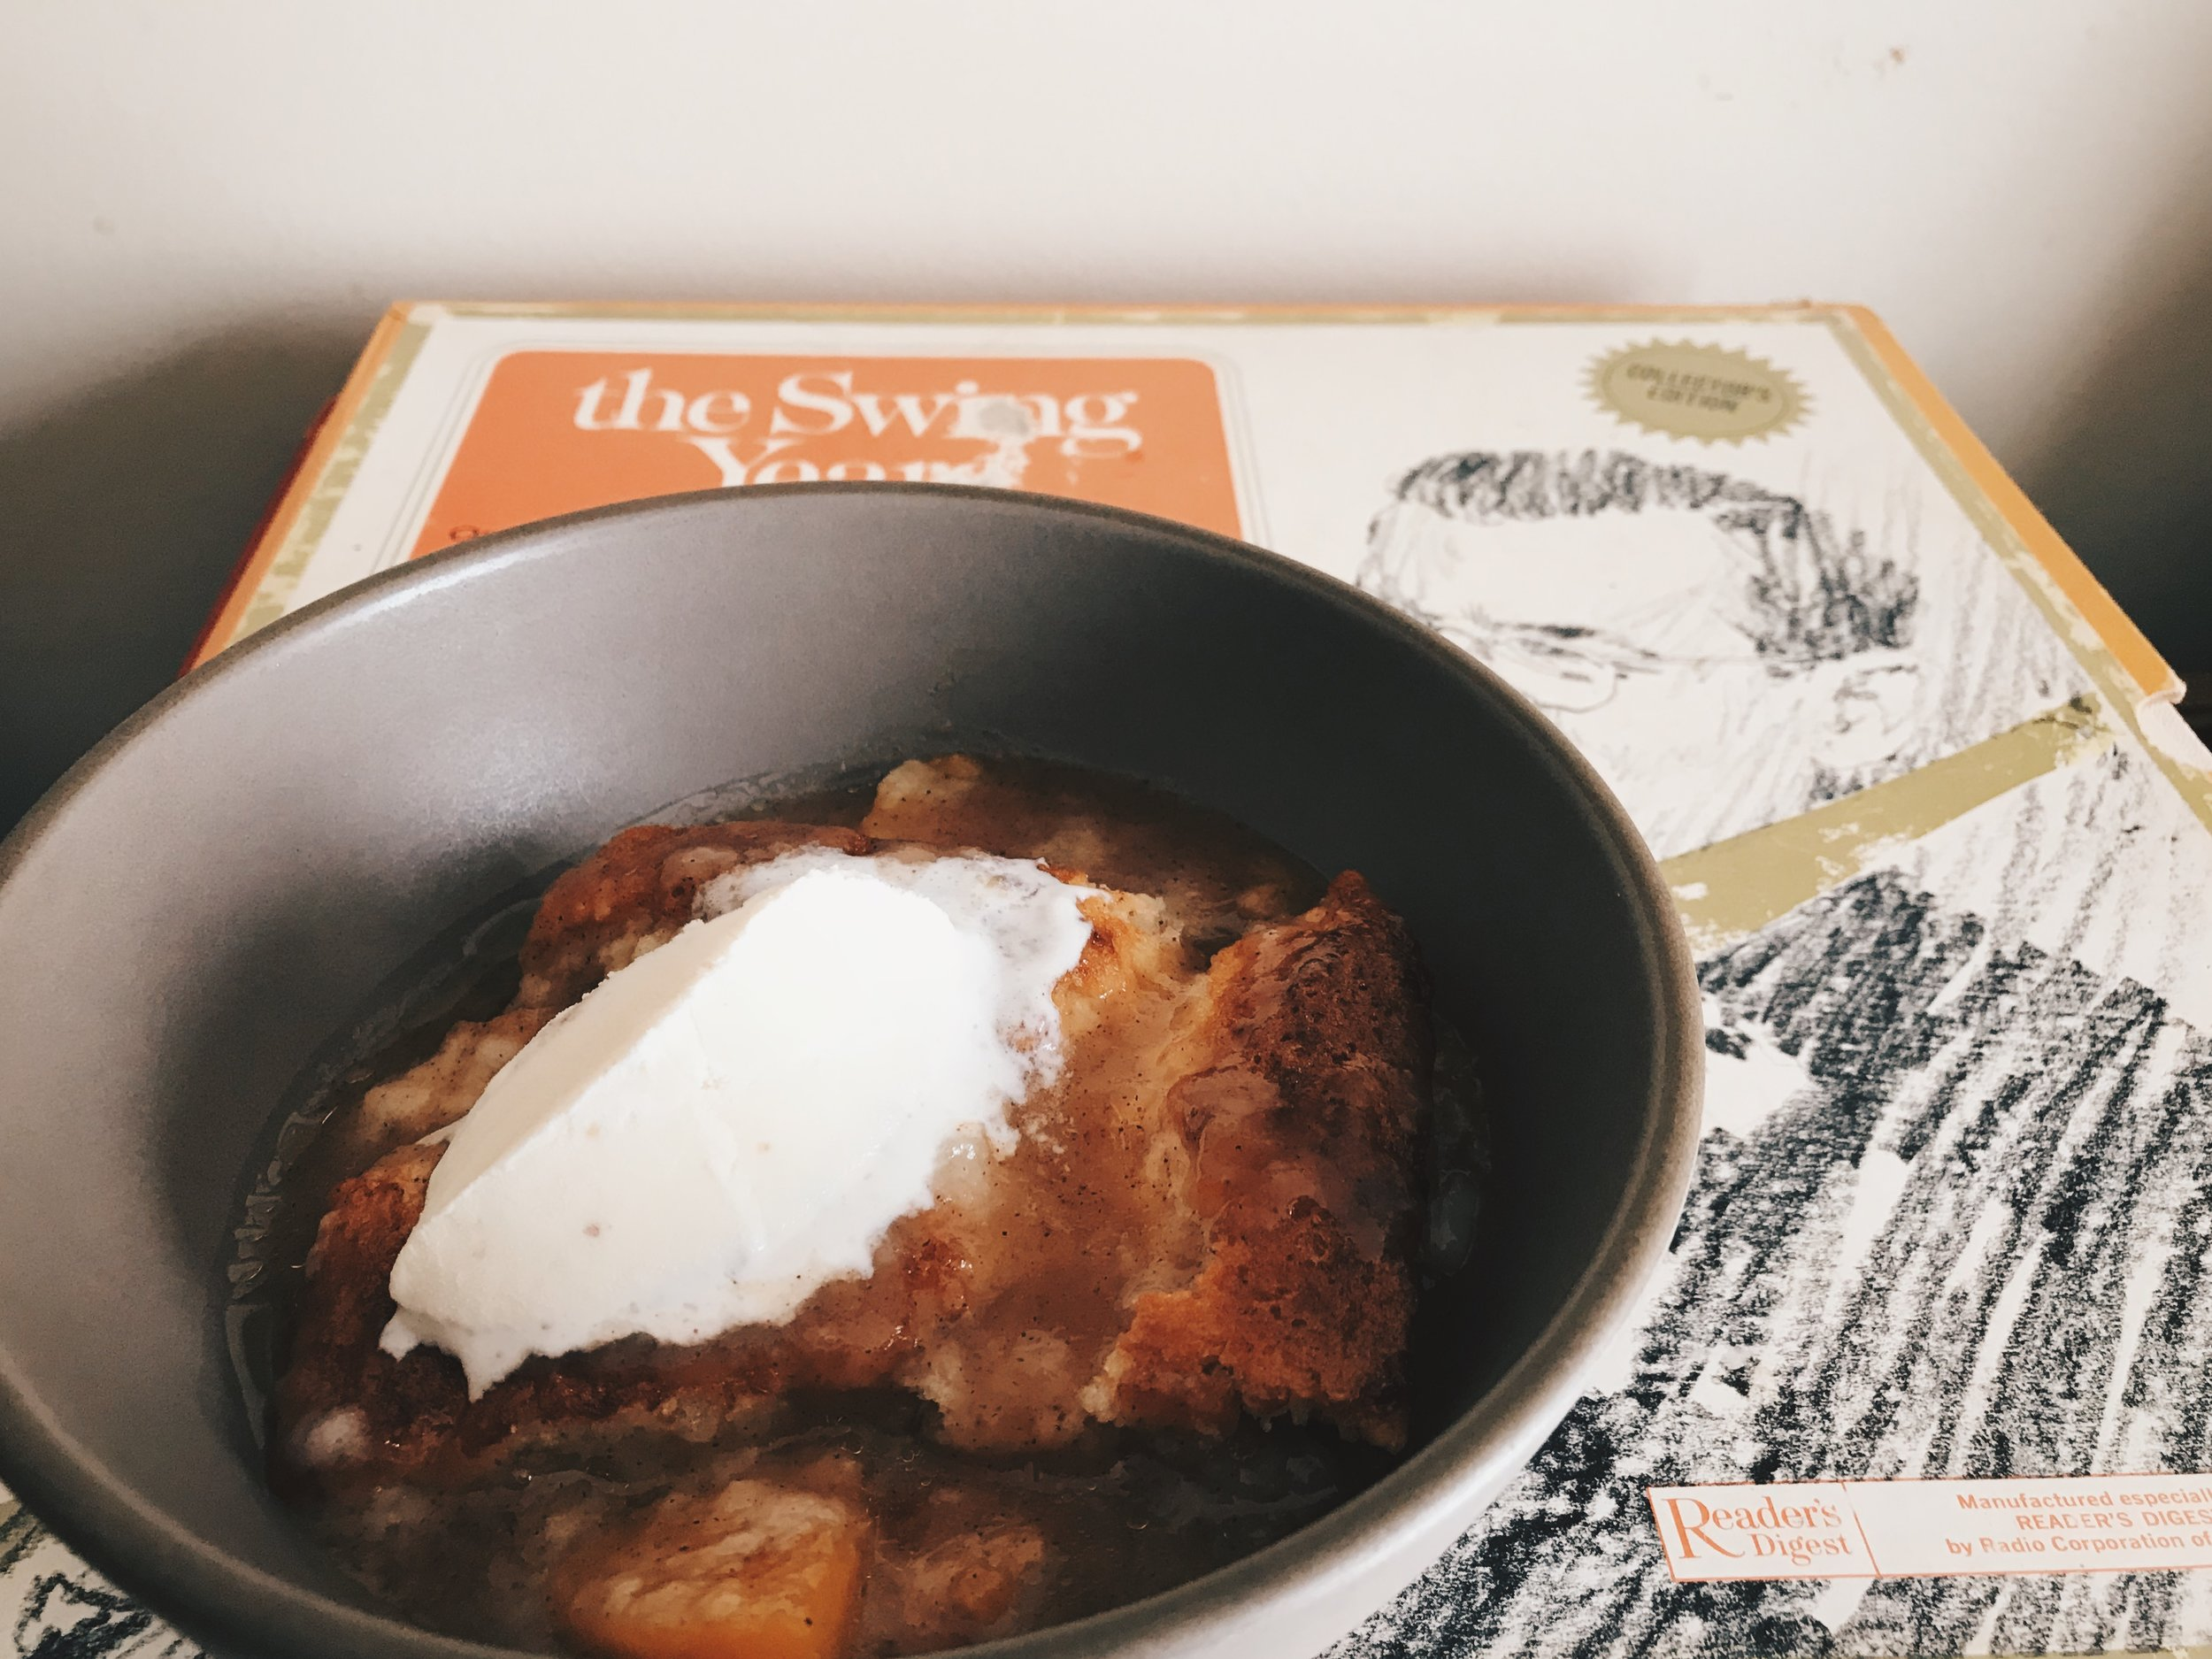 Raquel-Reyes-Peach-Cobbler-The-Attic-On-Eighth-Cooking-Lessons-14.JPG